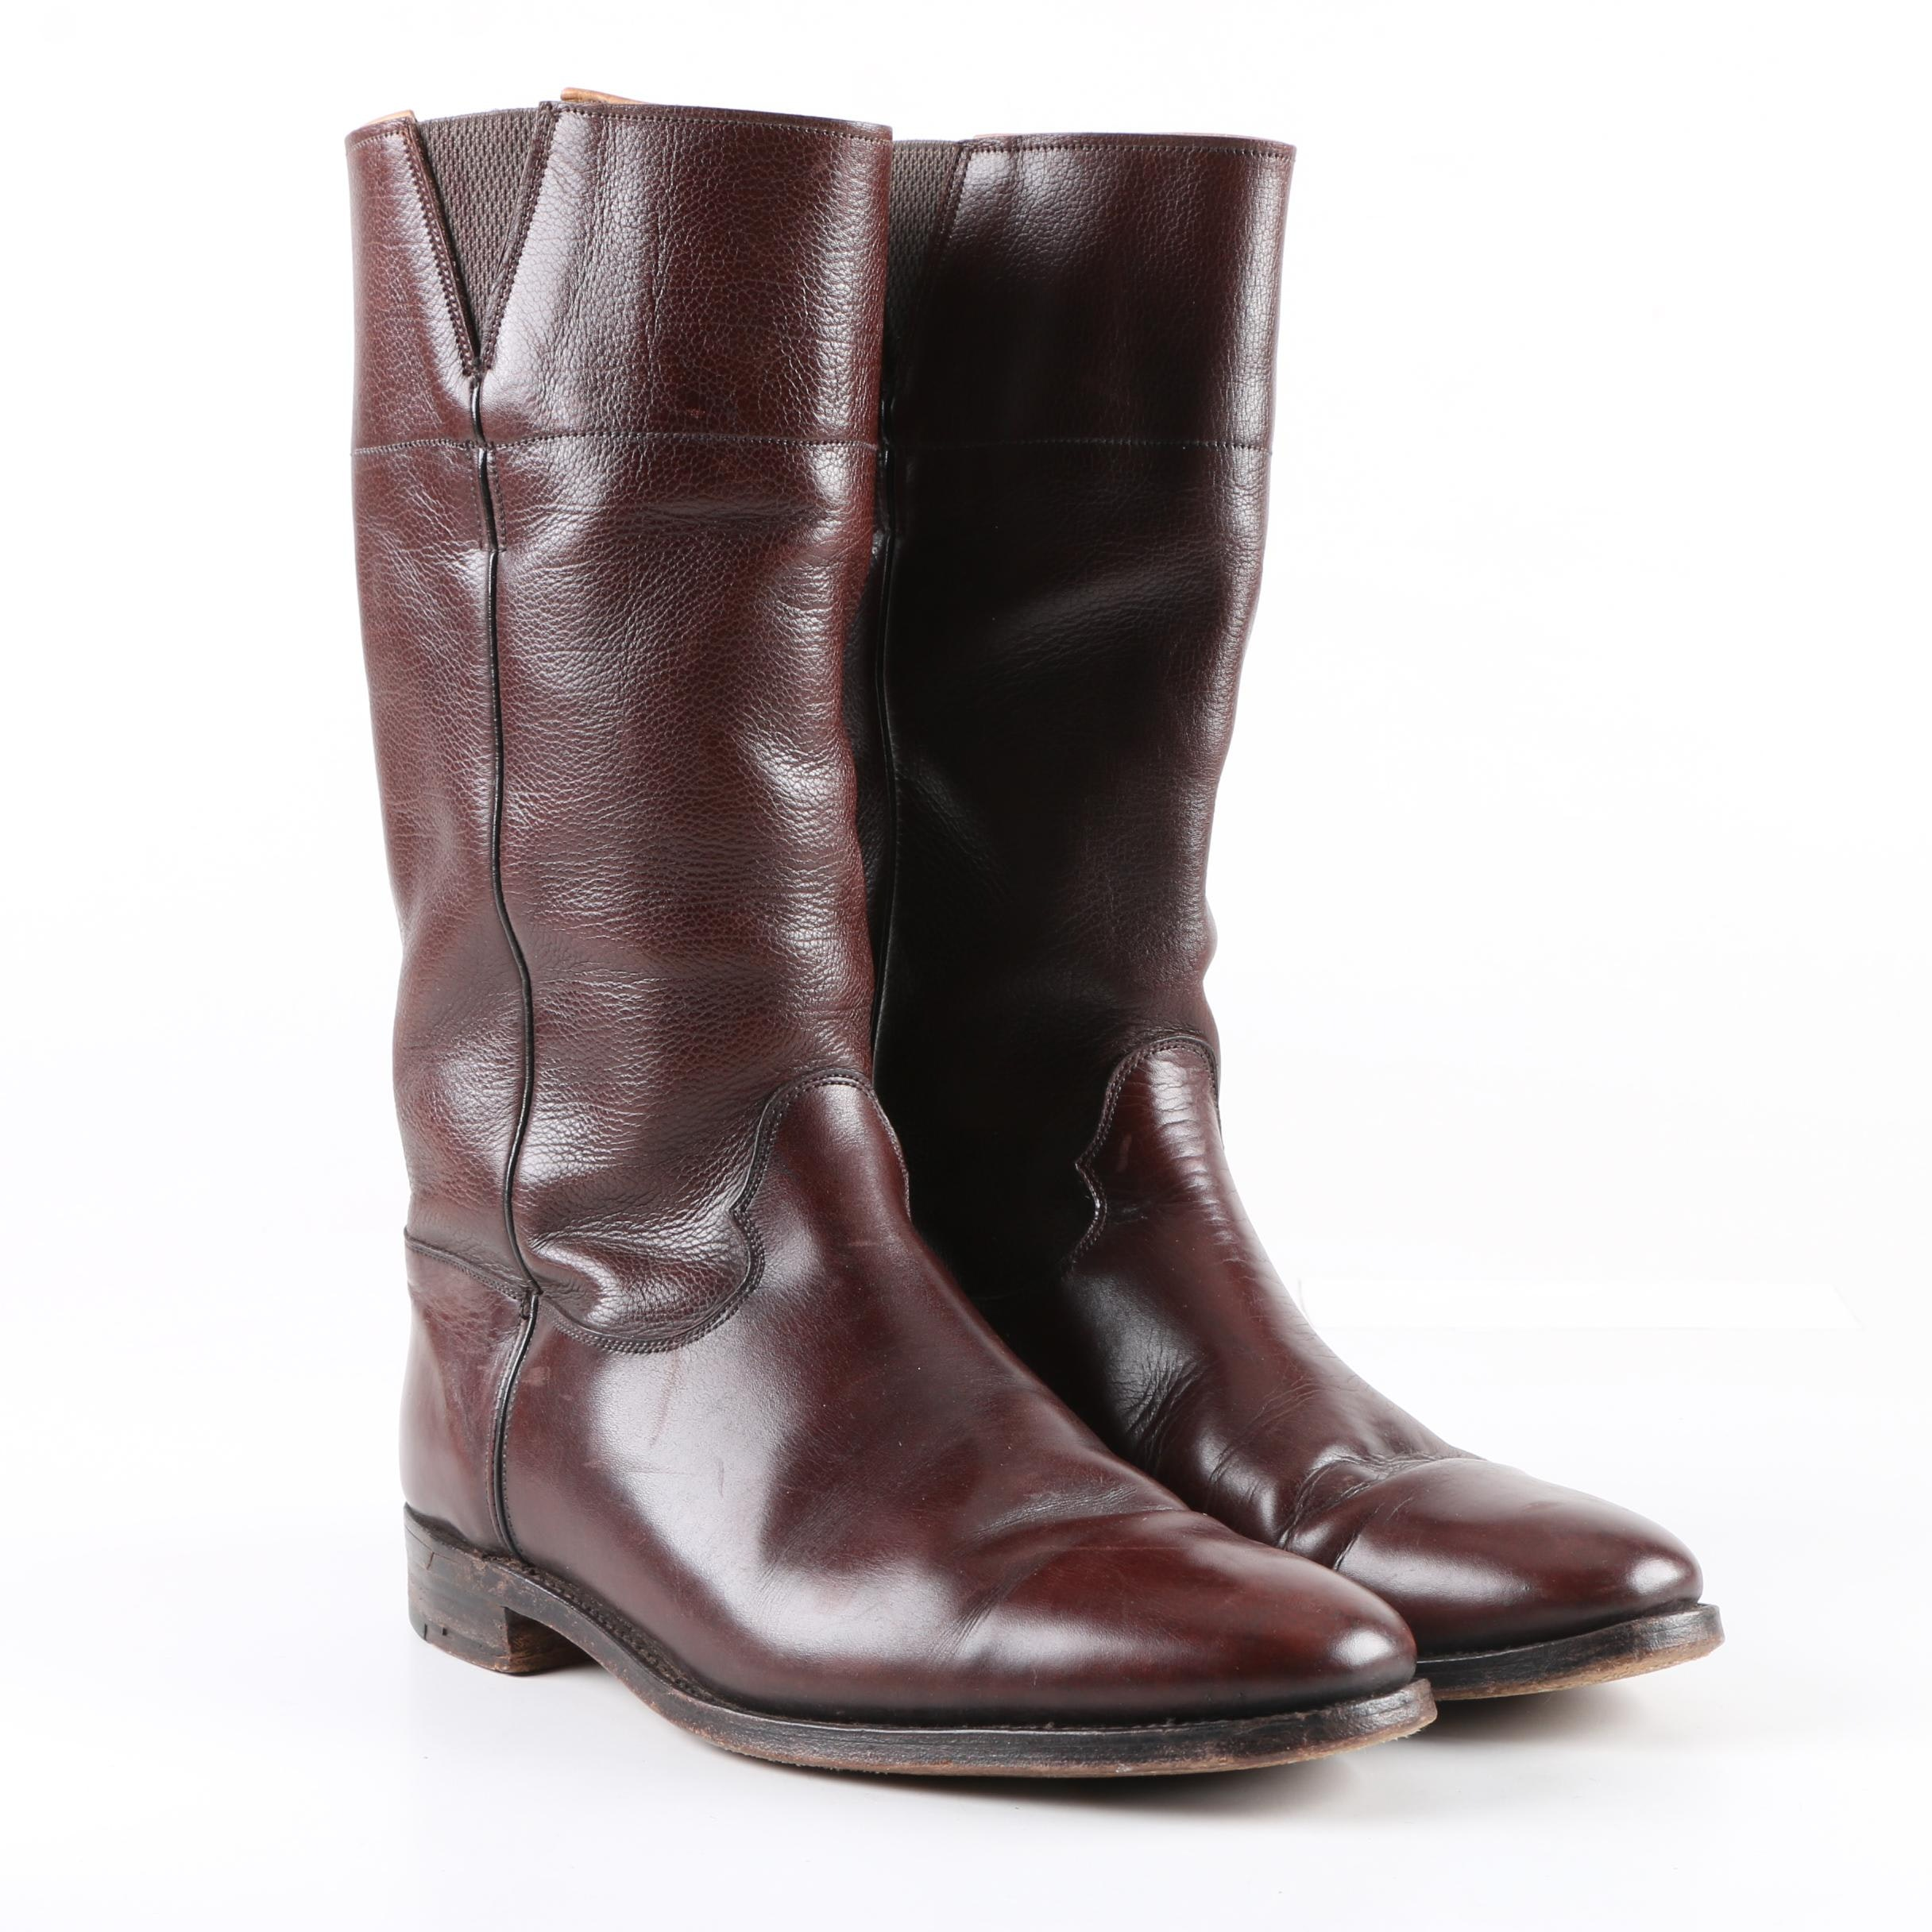 Men's Vintage Corniche by Tricker's Burgundy Leather Boots